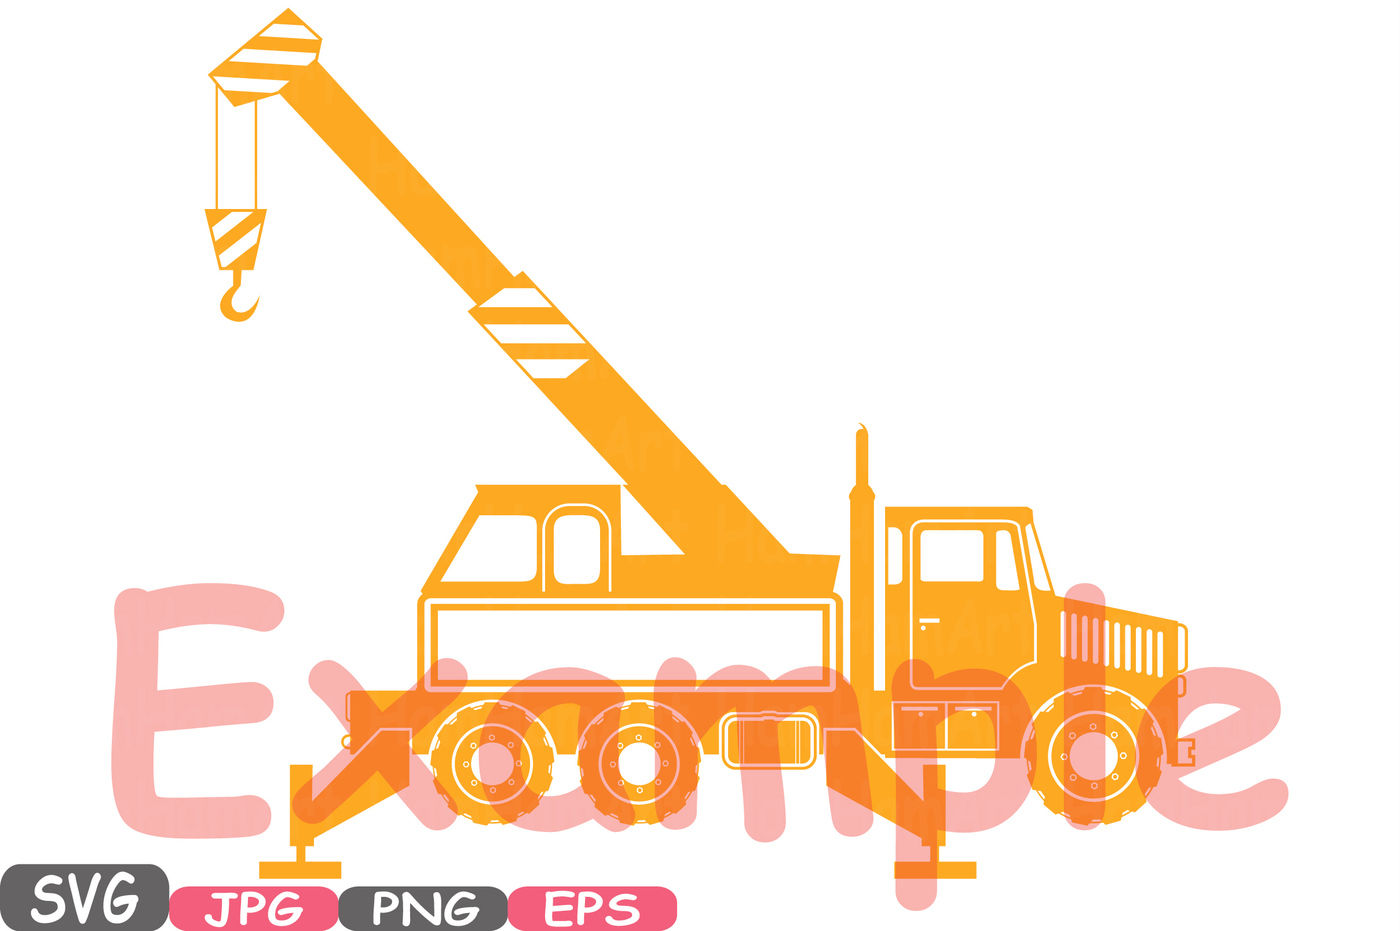 Construction Machines Circle Split Silhouette Svg File Cutting Files Dump Trucks Toy Toys Cars Excavator Stickers Builders Clipart 555s By Hamhamart Thehungryjpeg Com